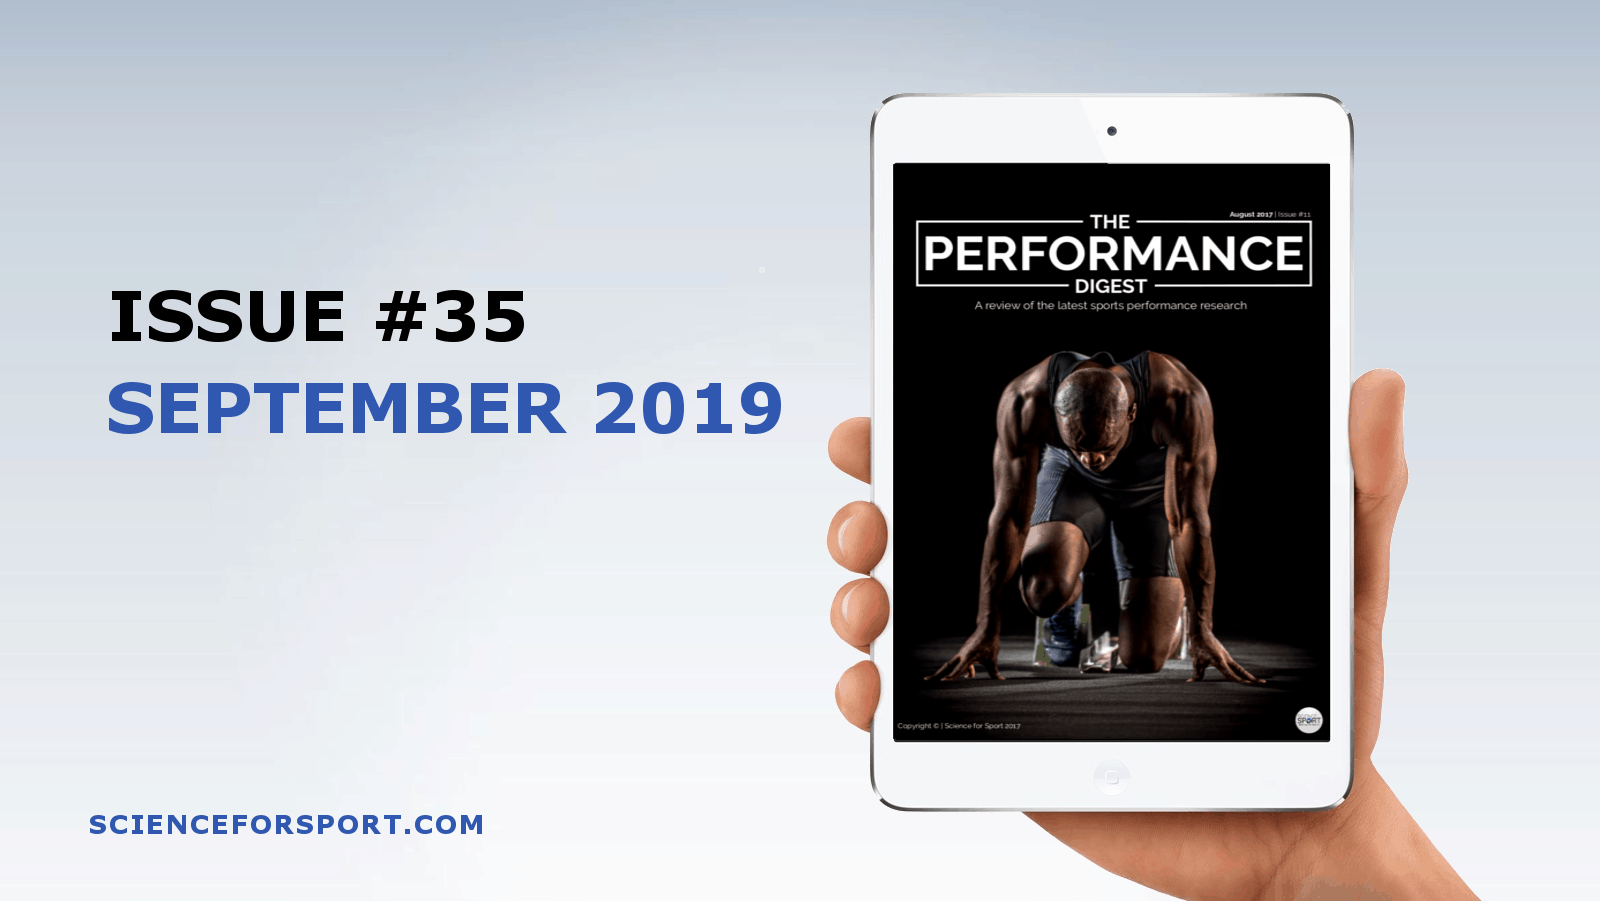 Performance Digest - September 19 (Issue #35)